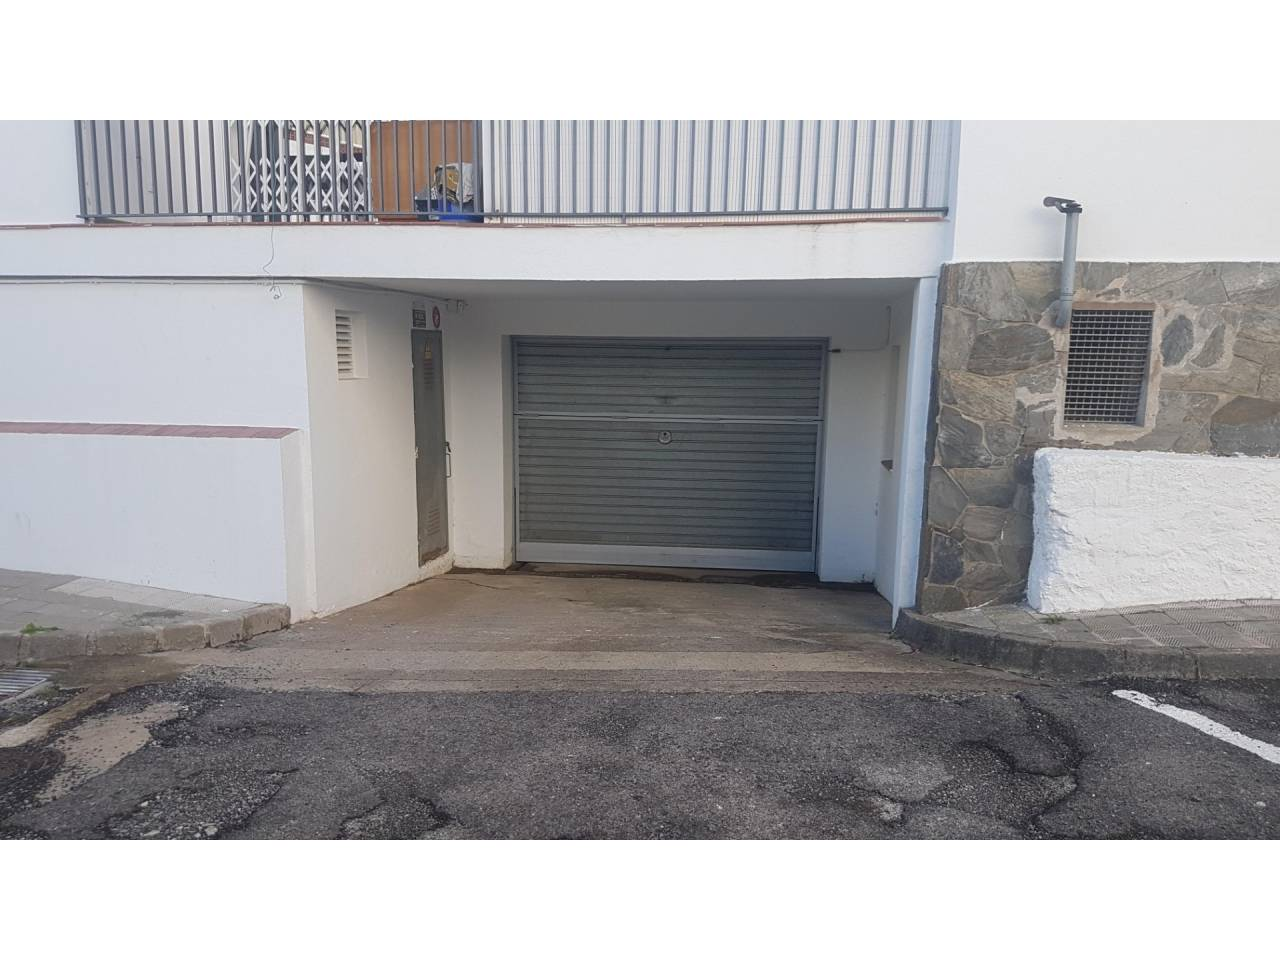 005050 - Parking spaces for sale in Empuriabrava